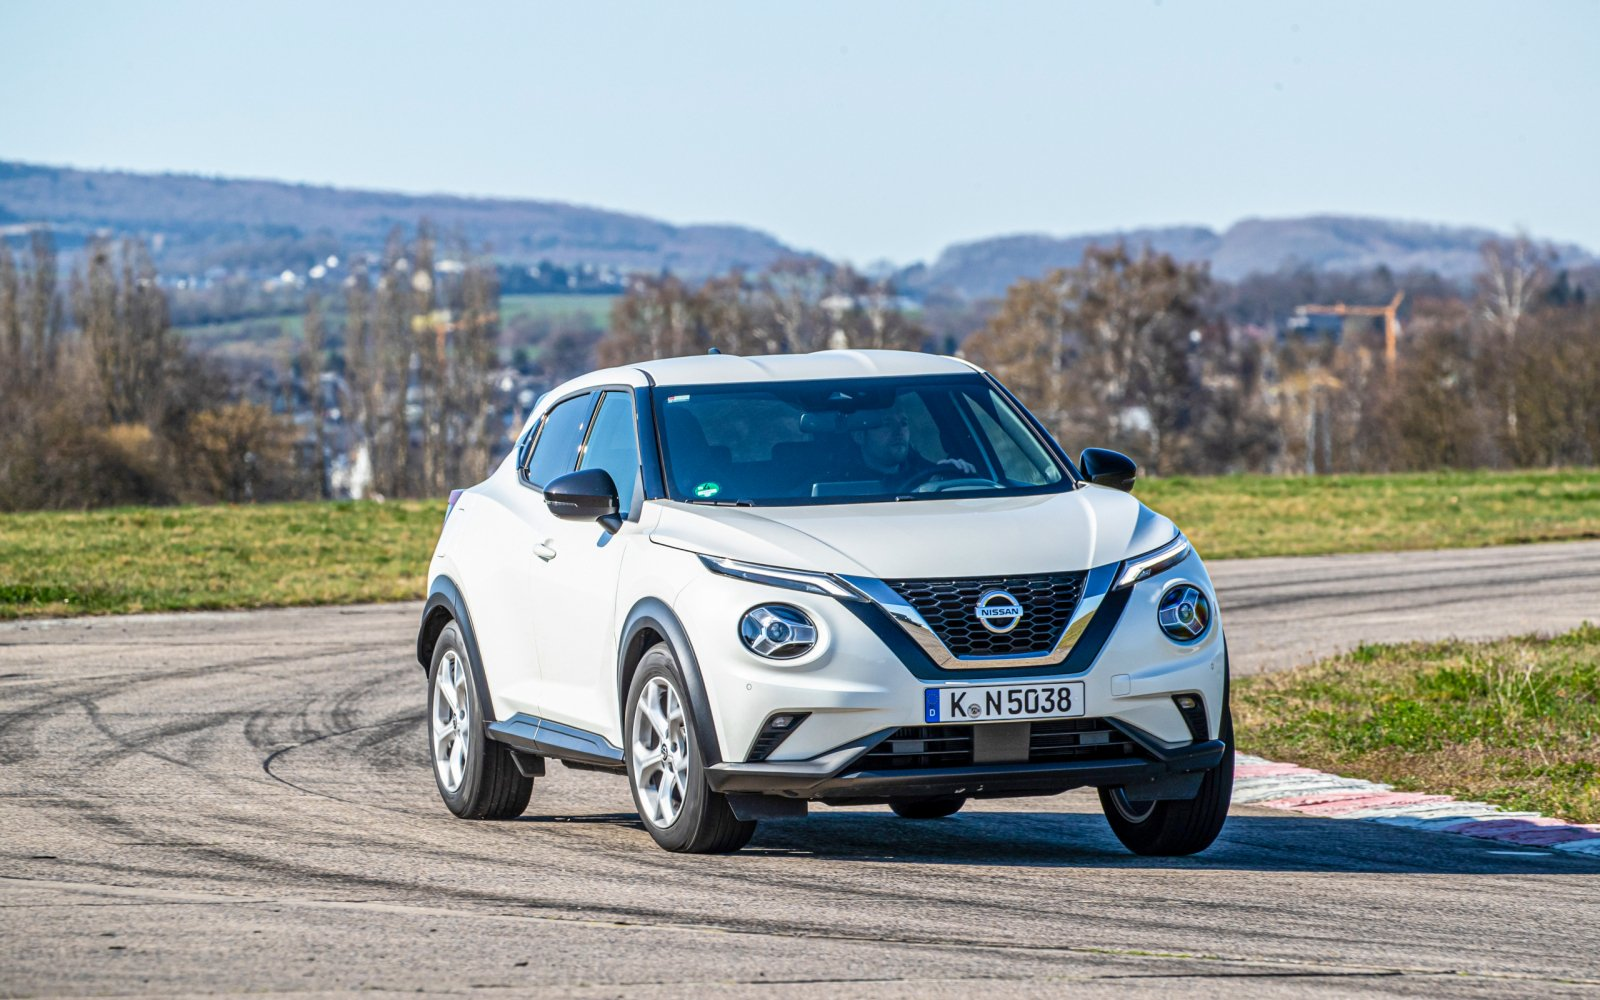 Test Renault Captur vs.  Nissan Juke: which one gets the best in terms of space and comfort?